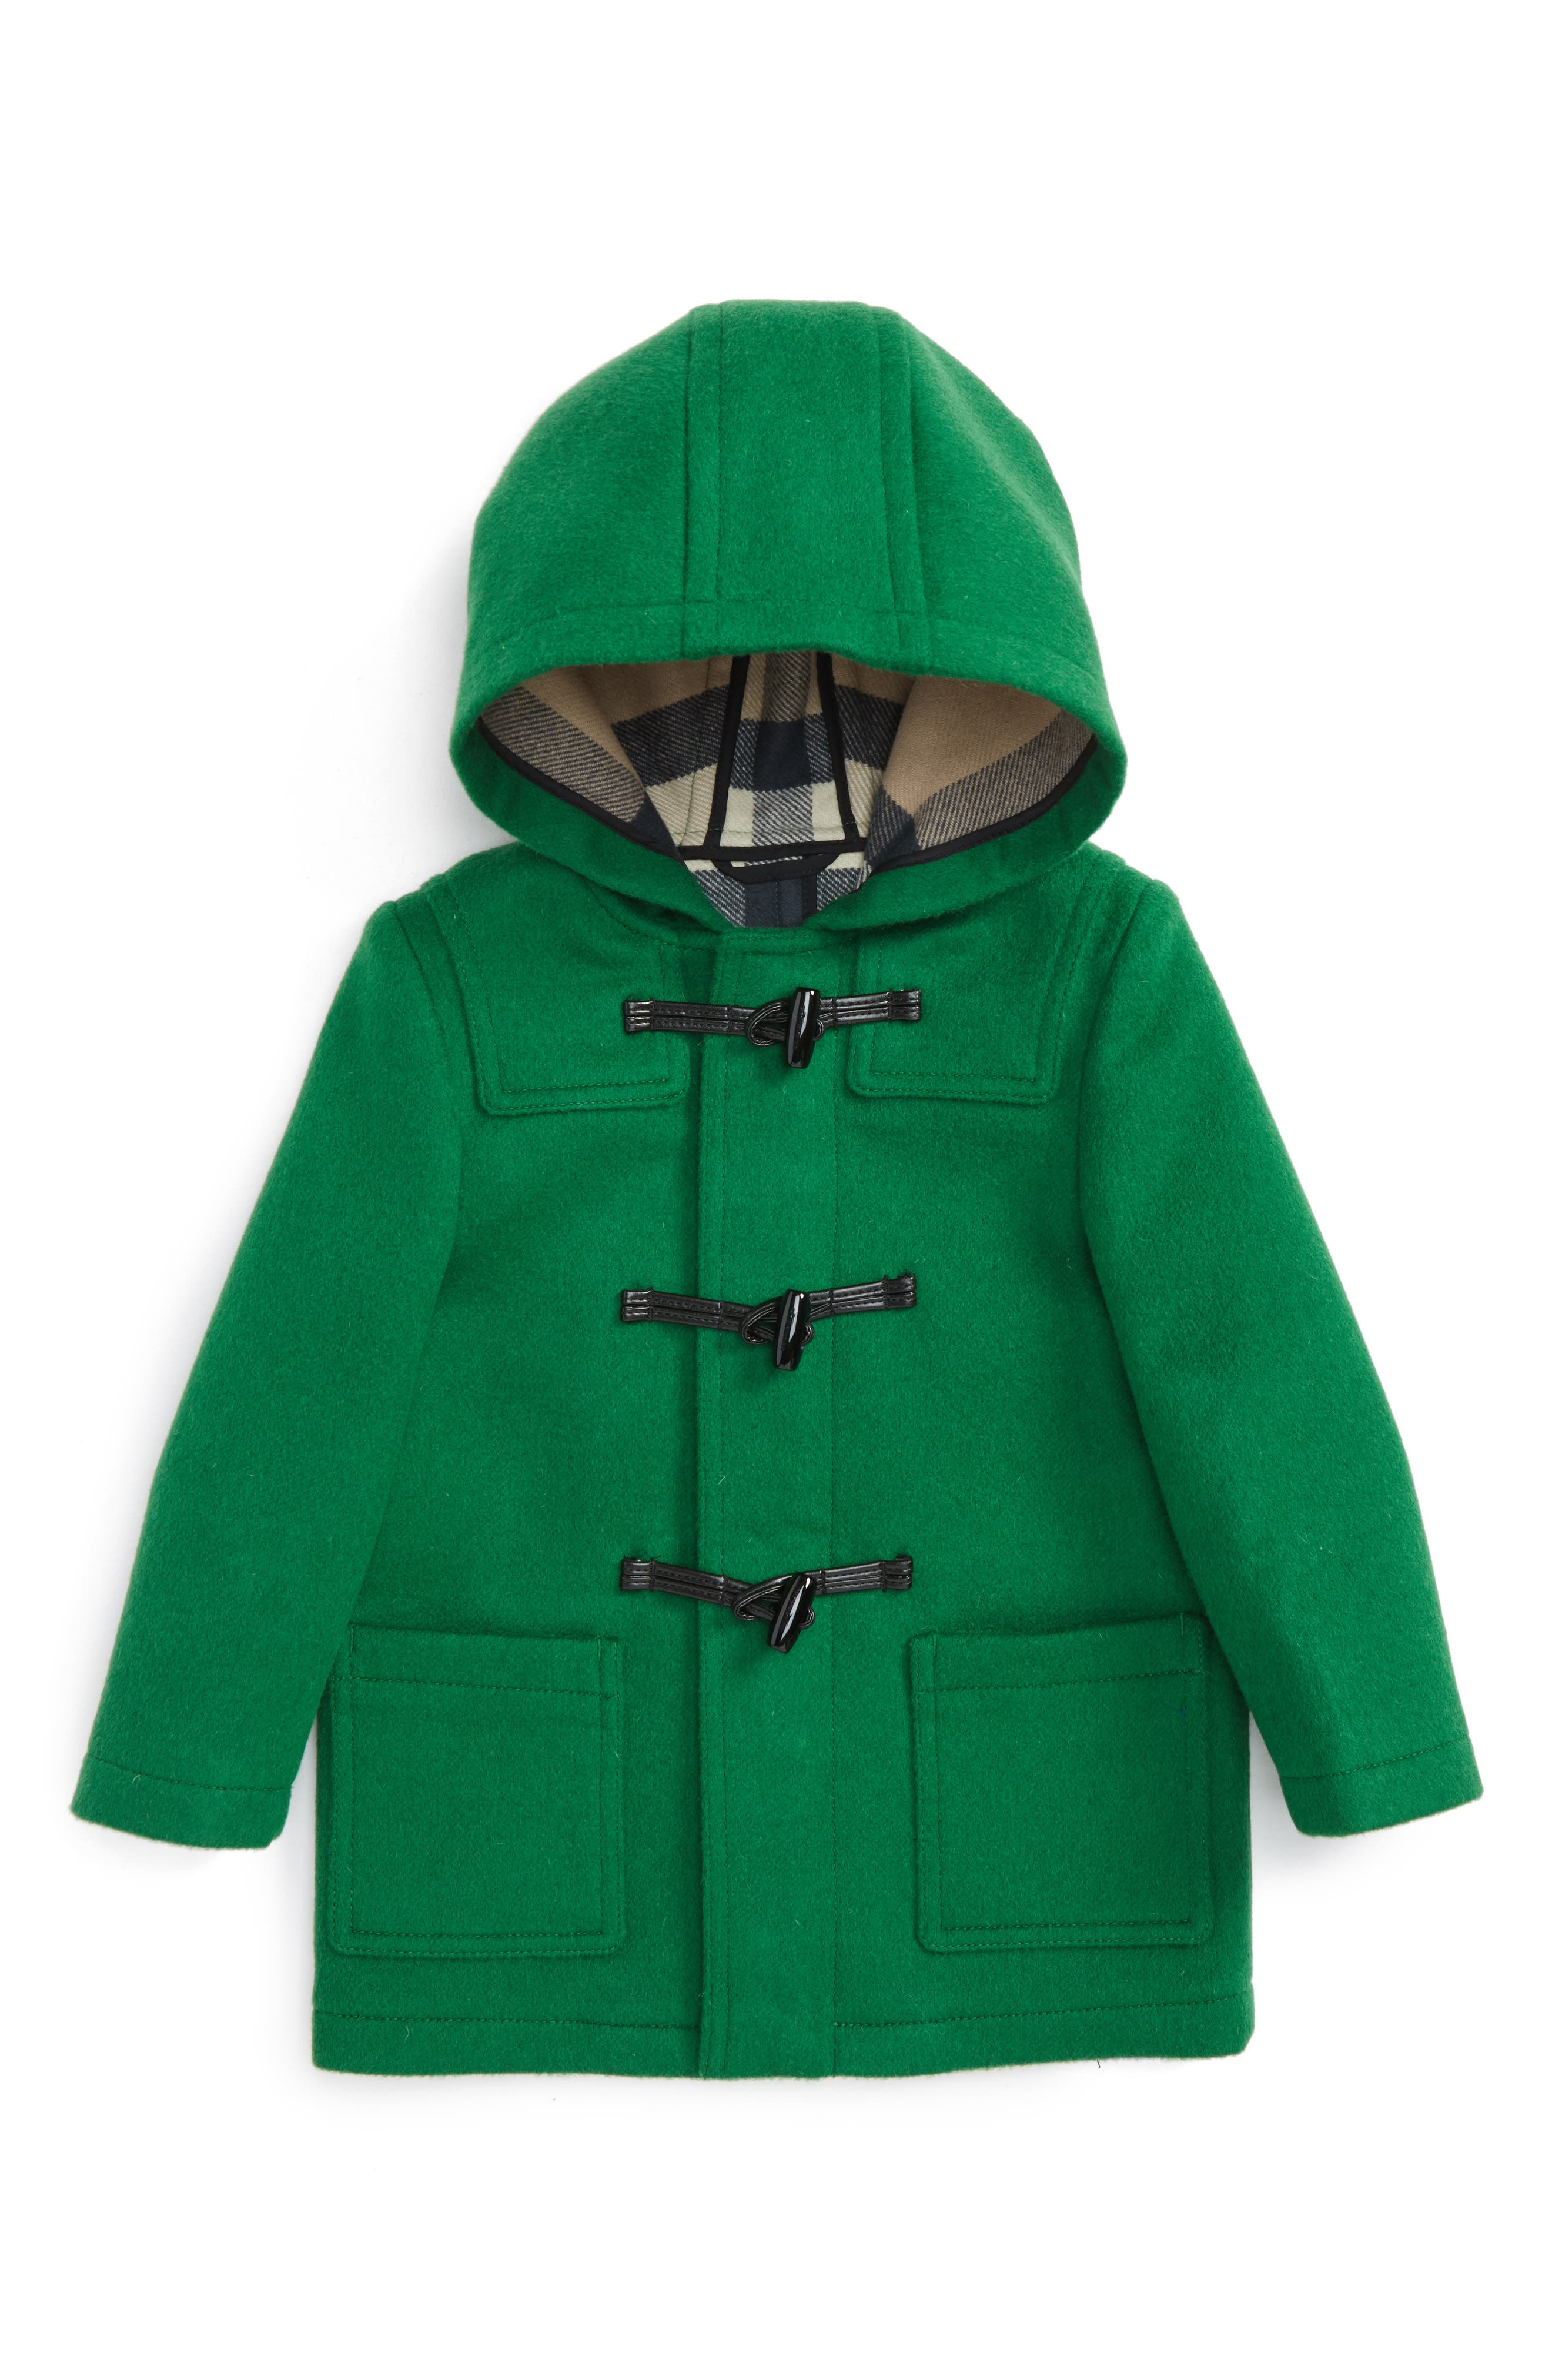 Burberry Brogan Hooded Wool Jacket (Toddler Boys)